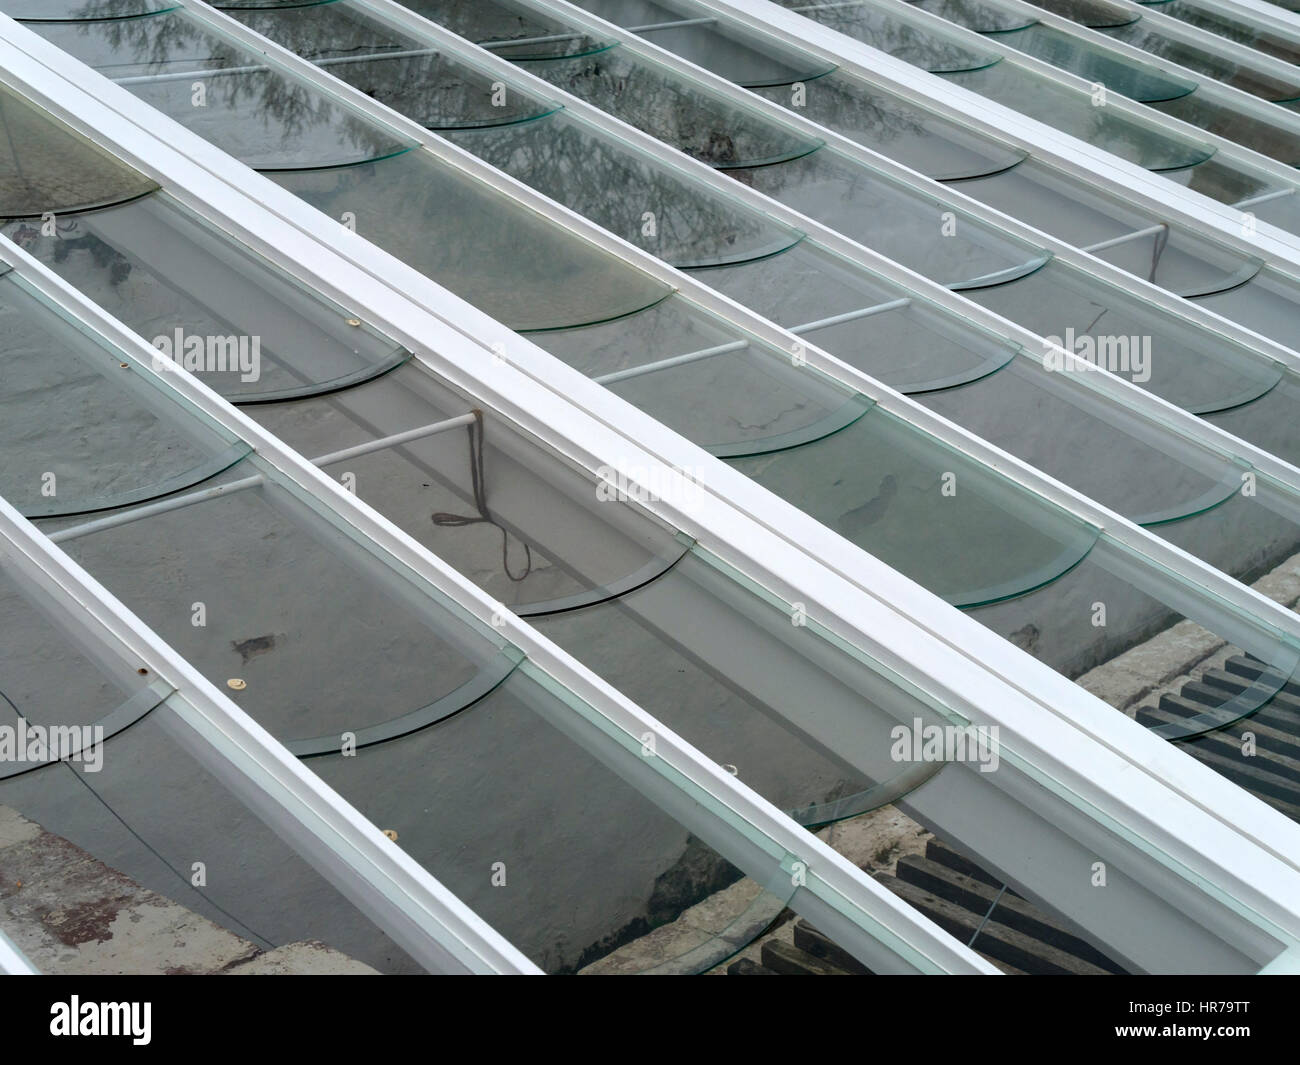 Cold frame or greenhouse roof with specially cut glass window panes which have curved edges which direct rainwater - Stock Image